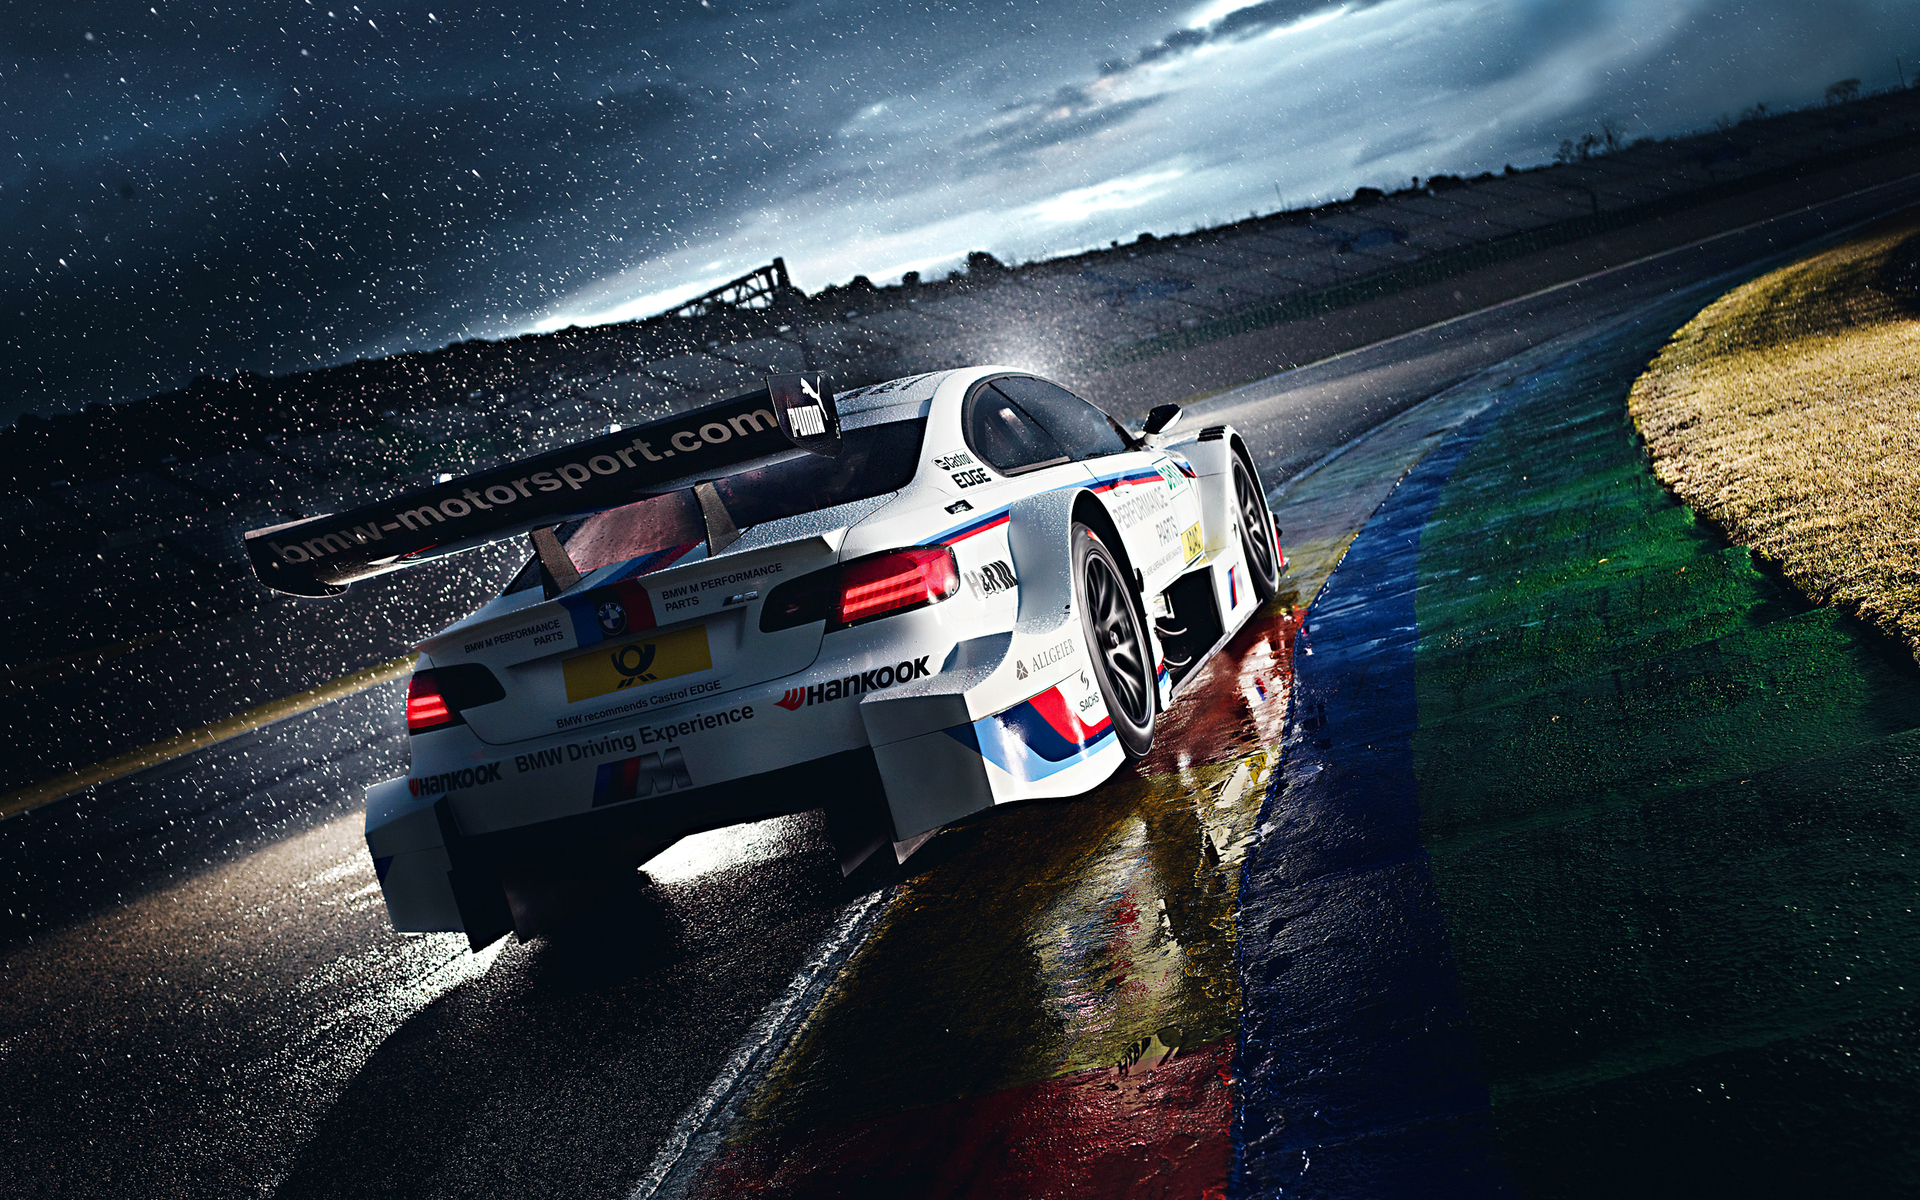 Bmw m3 dtm racing cars vehicles race cars race tracks wet rain water wallpaper 1920x1200